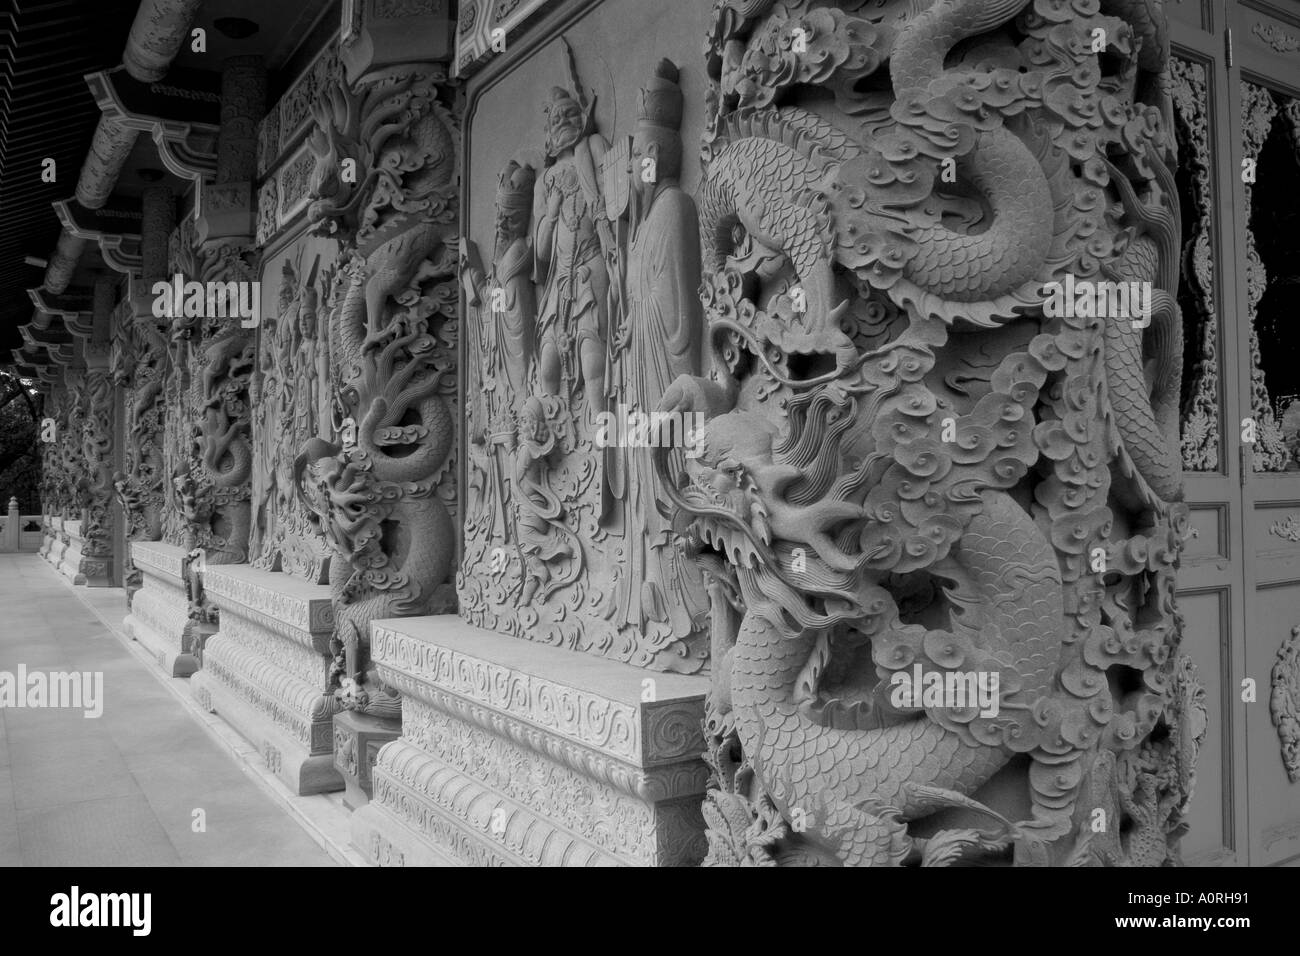 Temple Wall Black and White - Stock Image